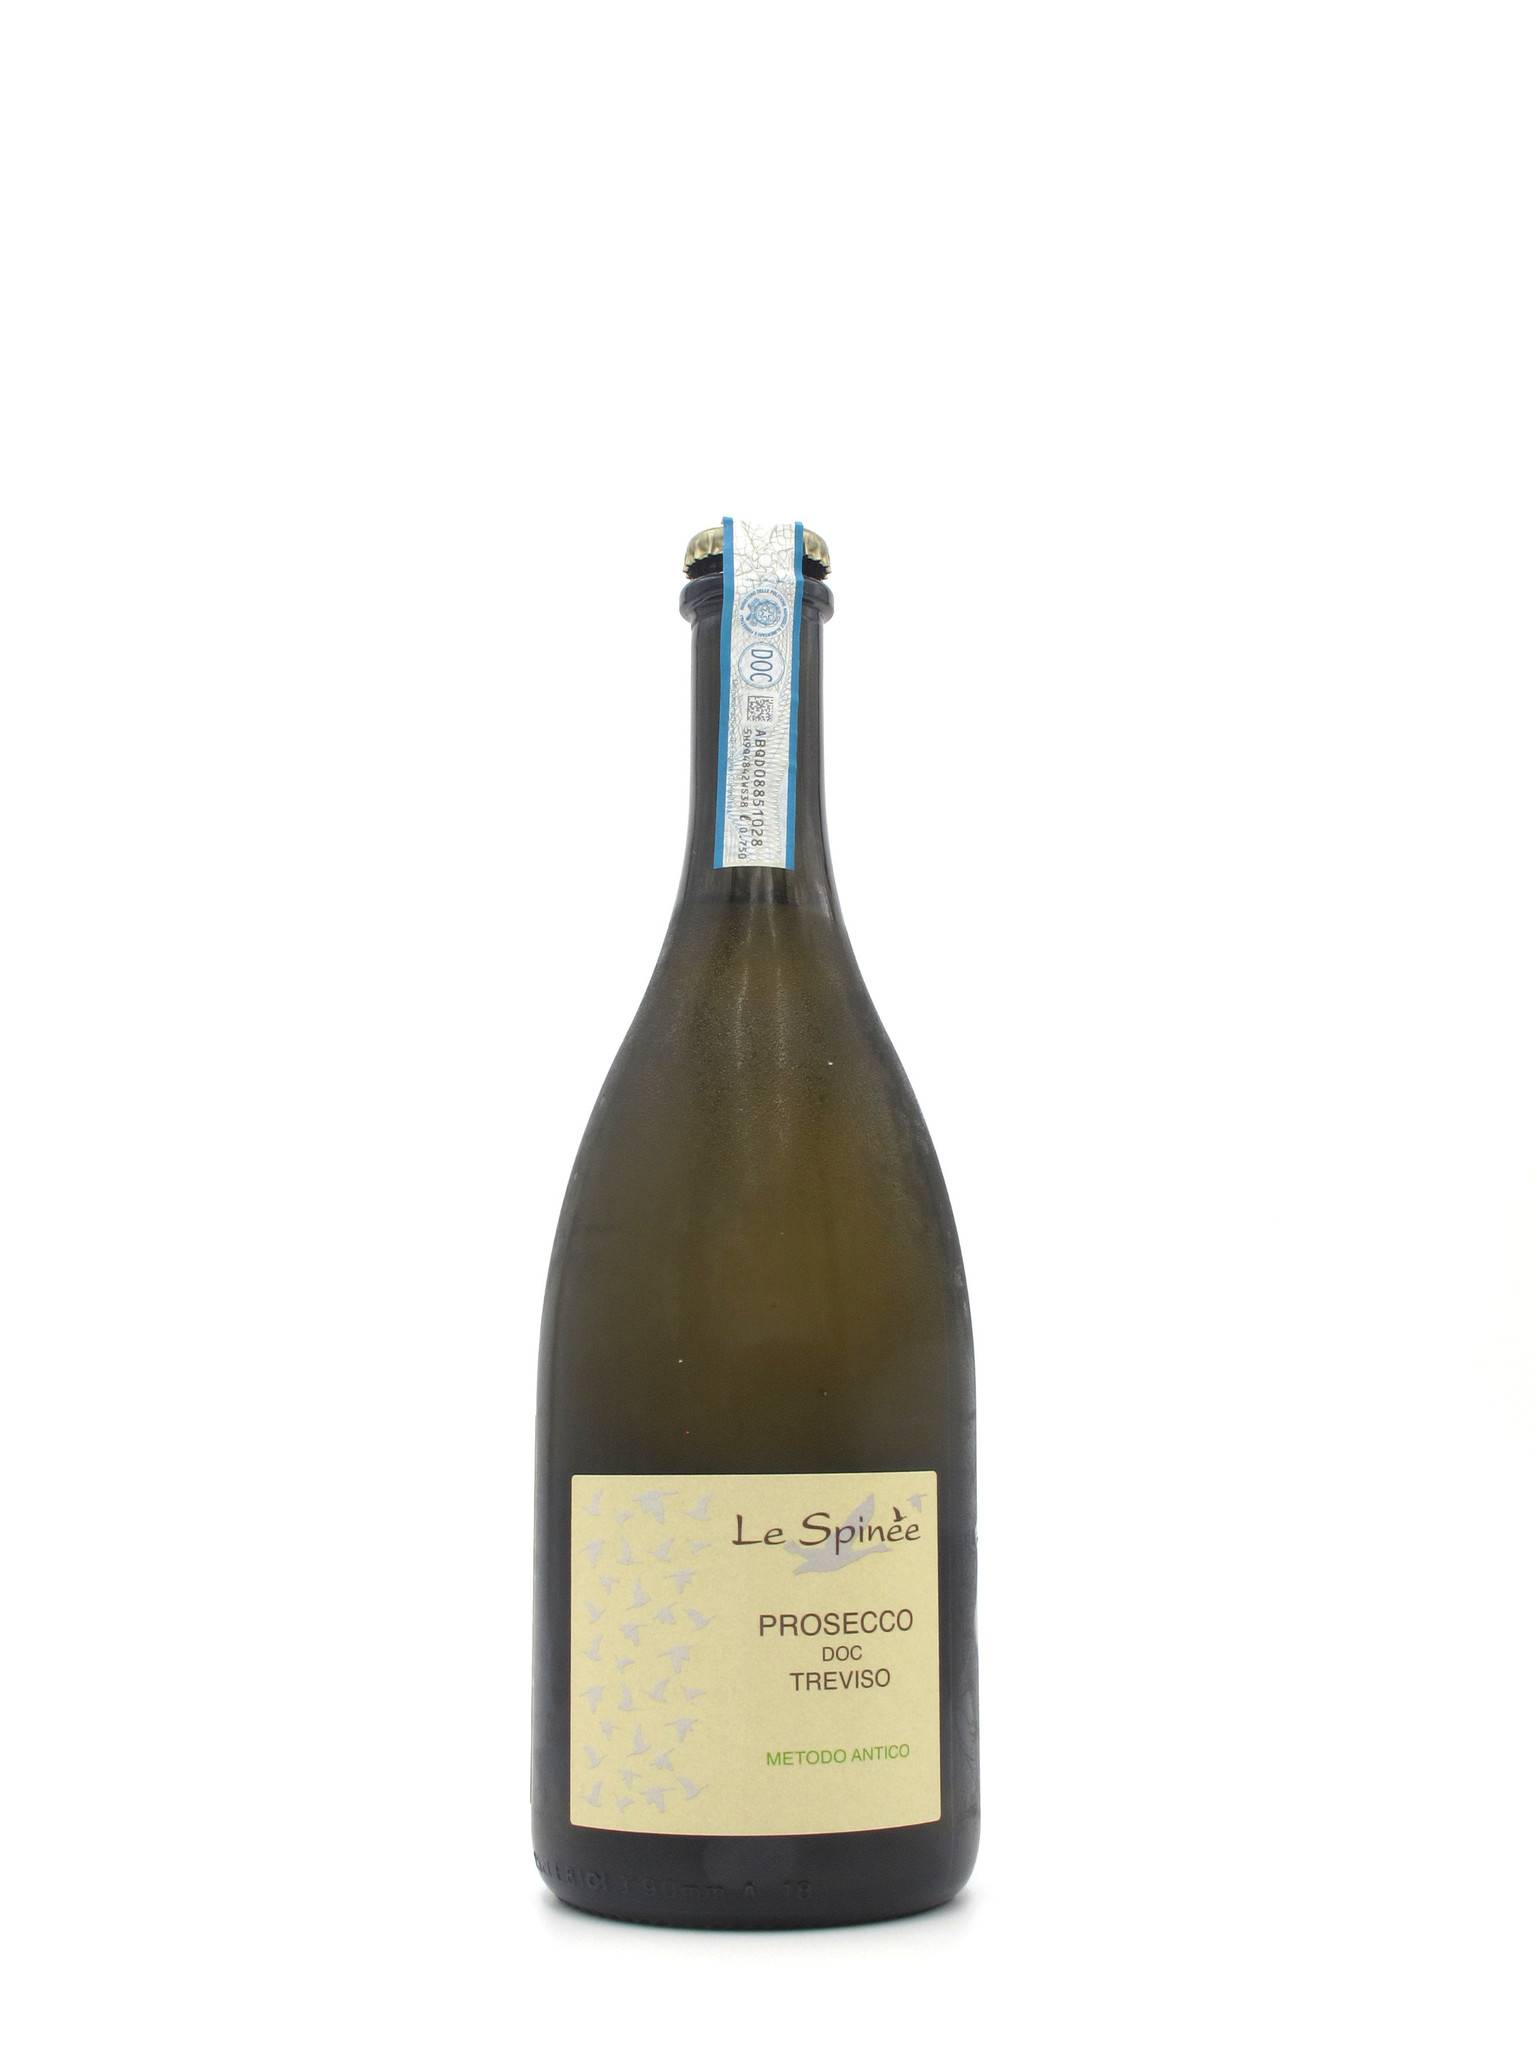 Le Spinee NV Le Spinee Treviso Prosecco 750ml